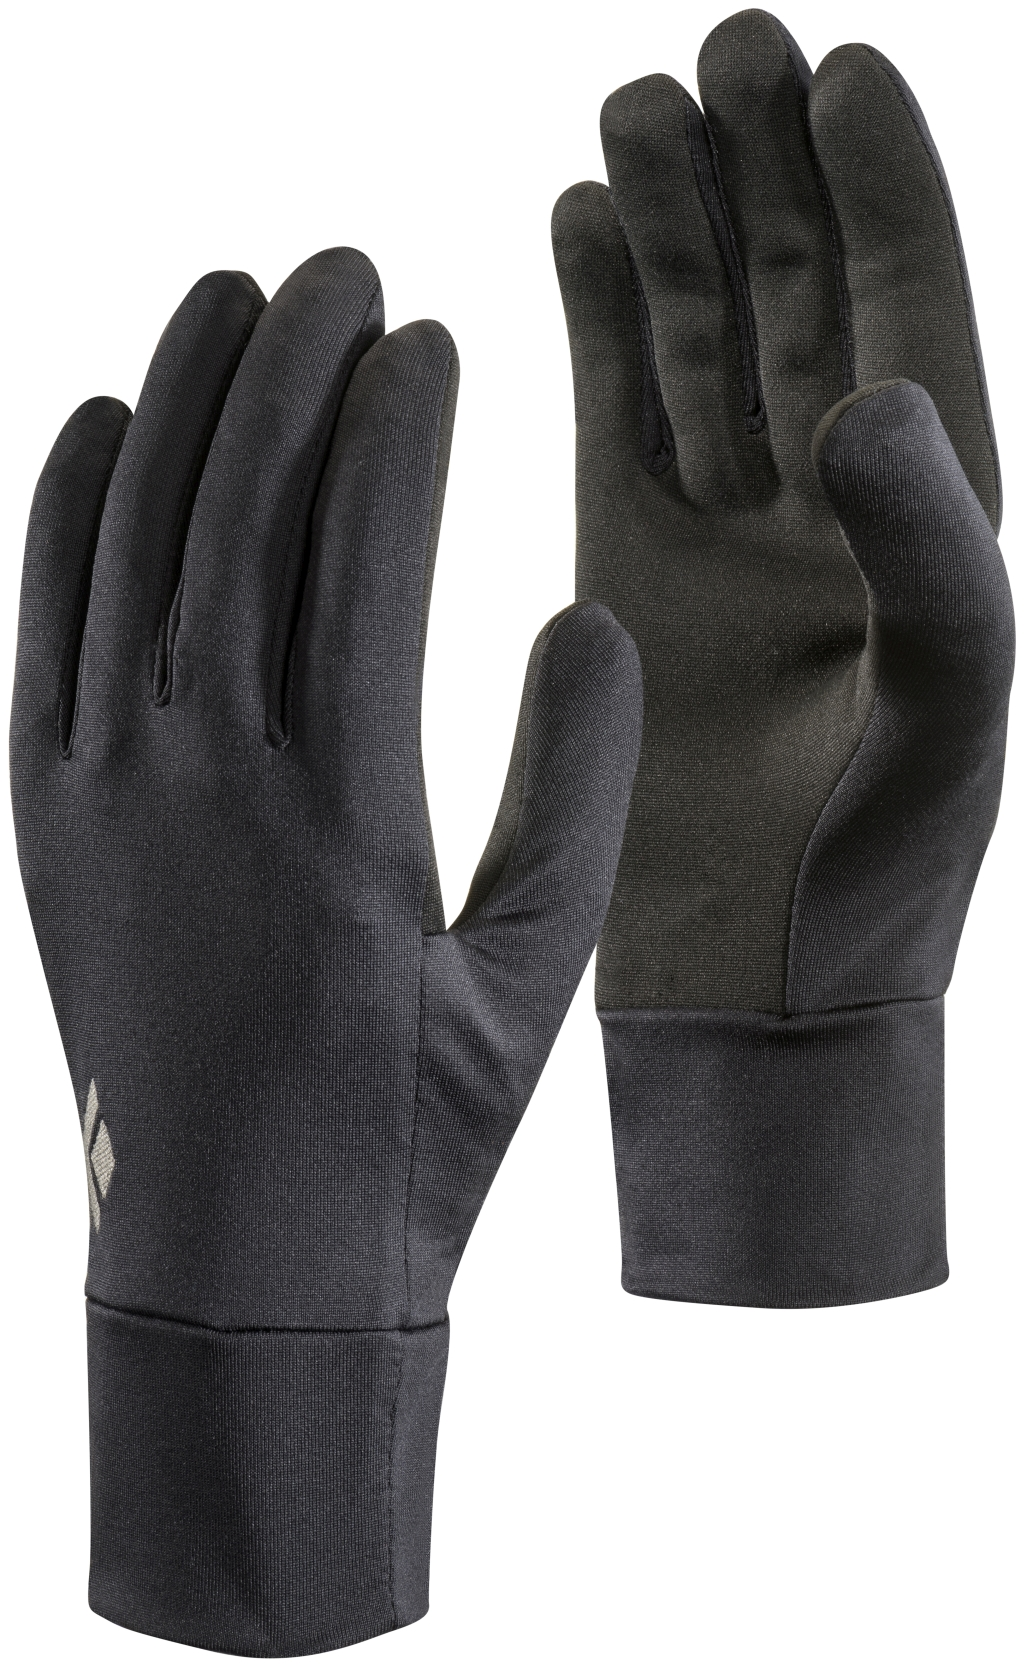 Black Diamond Lightweight Screentap Fleece Gloves Black-30